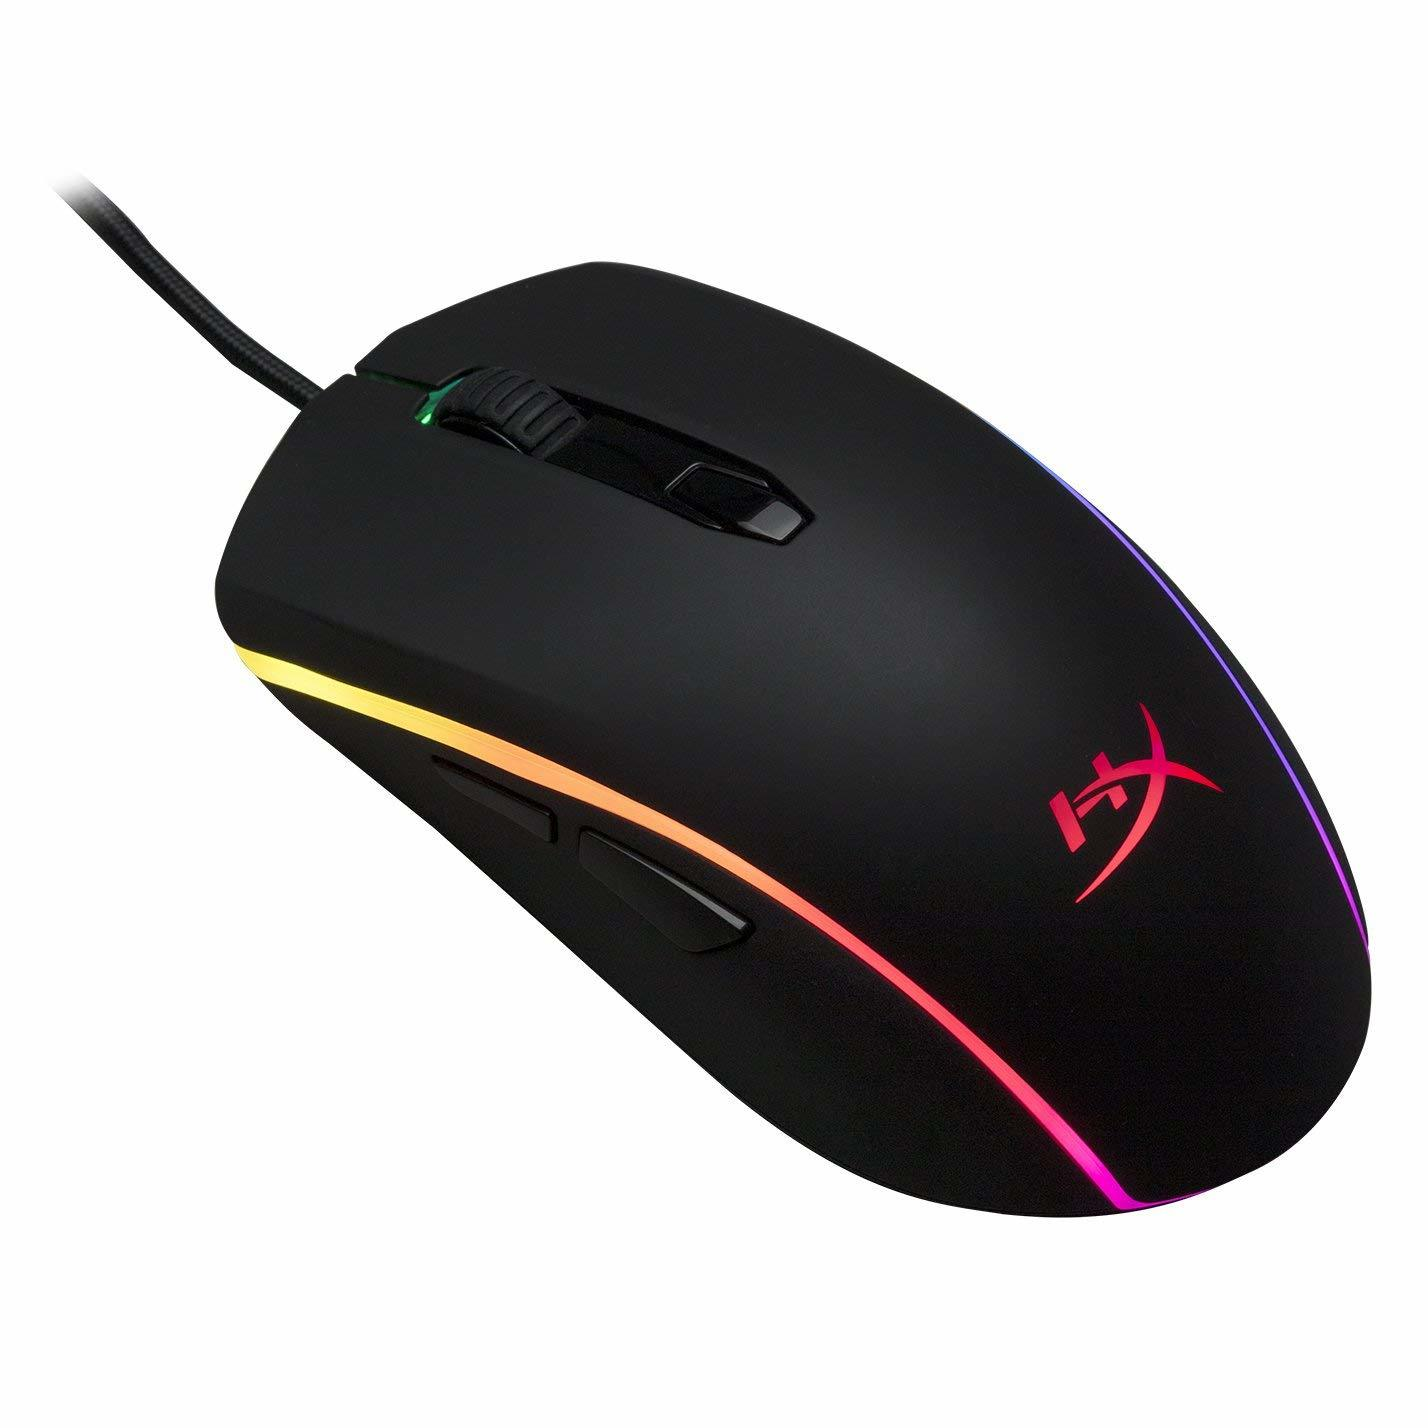 HyperX Pulsefire Surge RGB Gaming Mouse for PC image